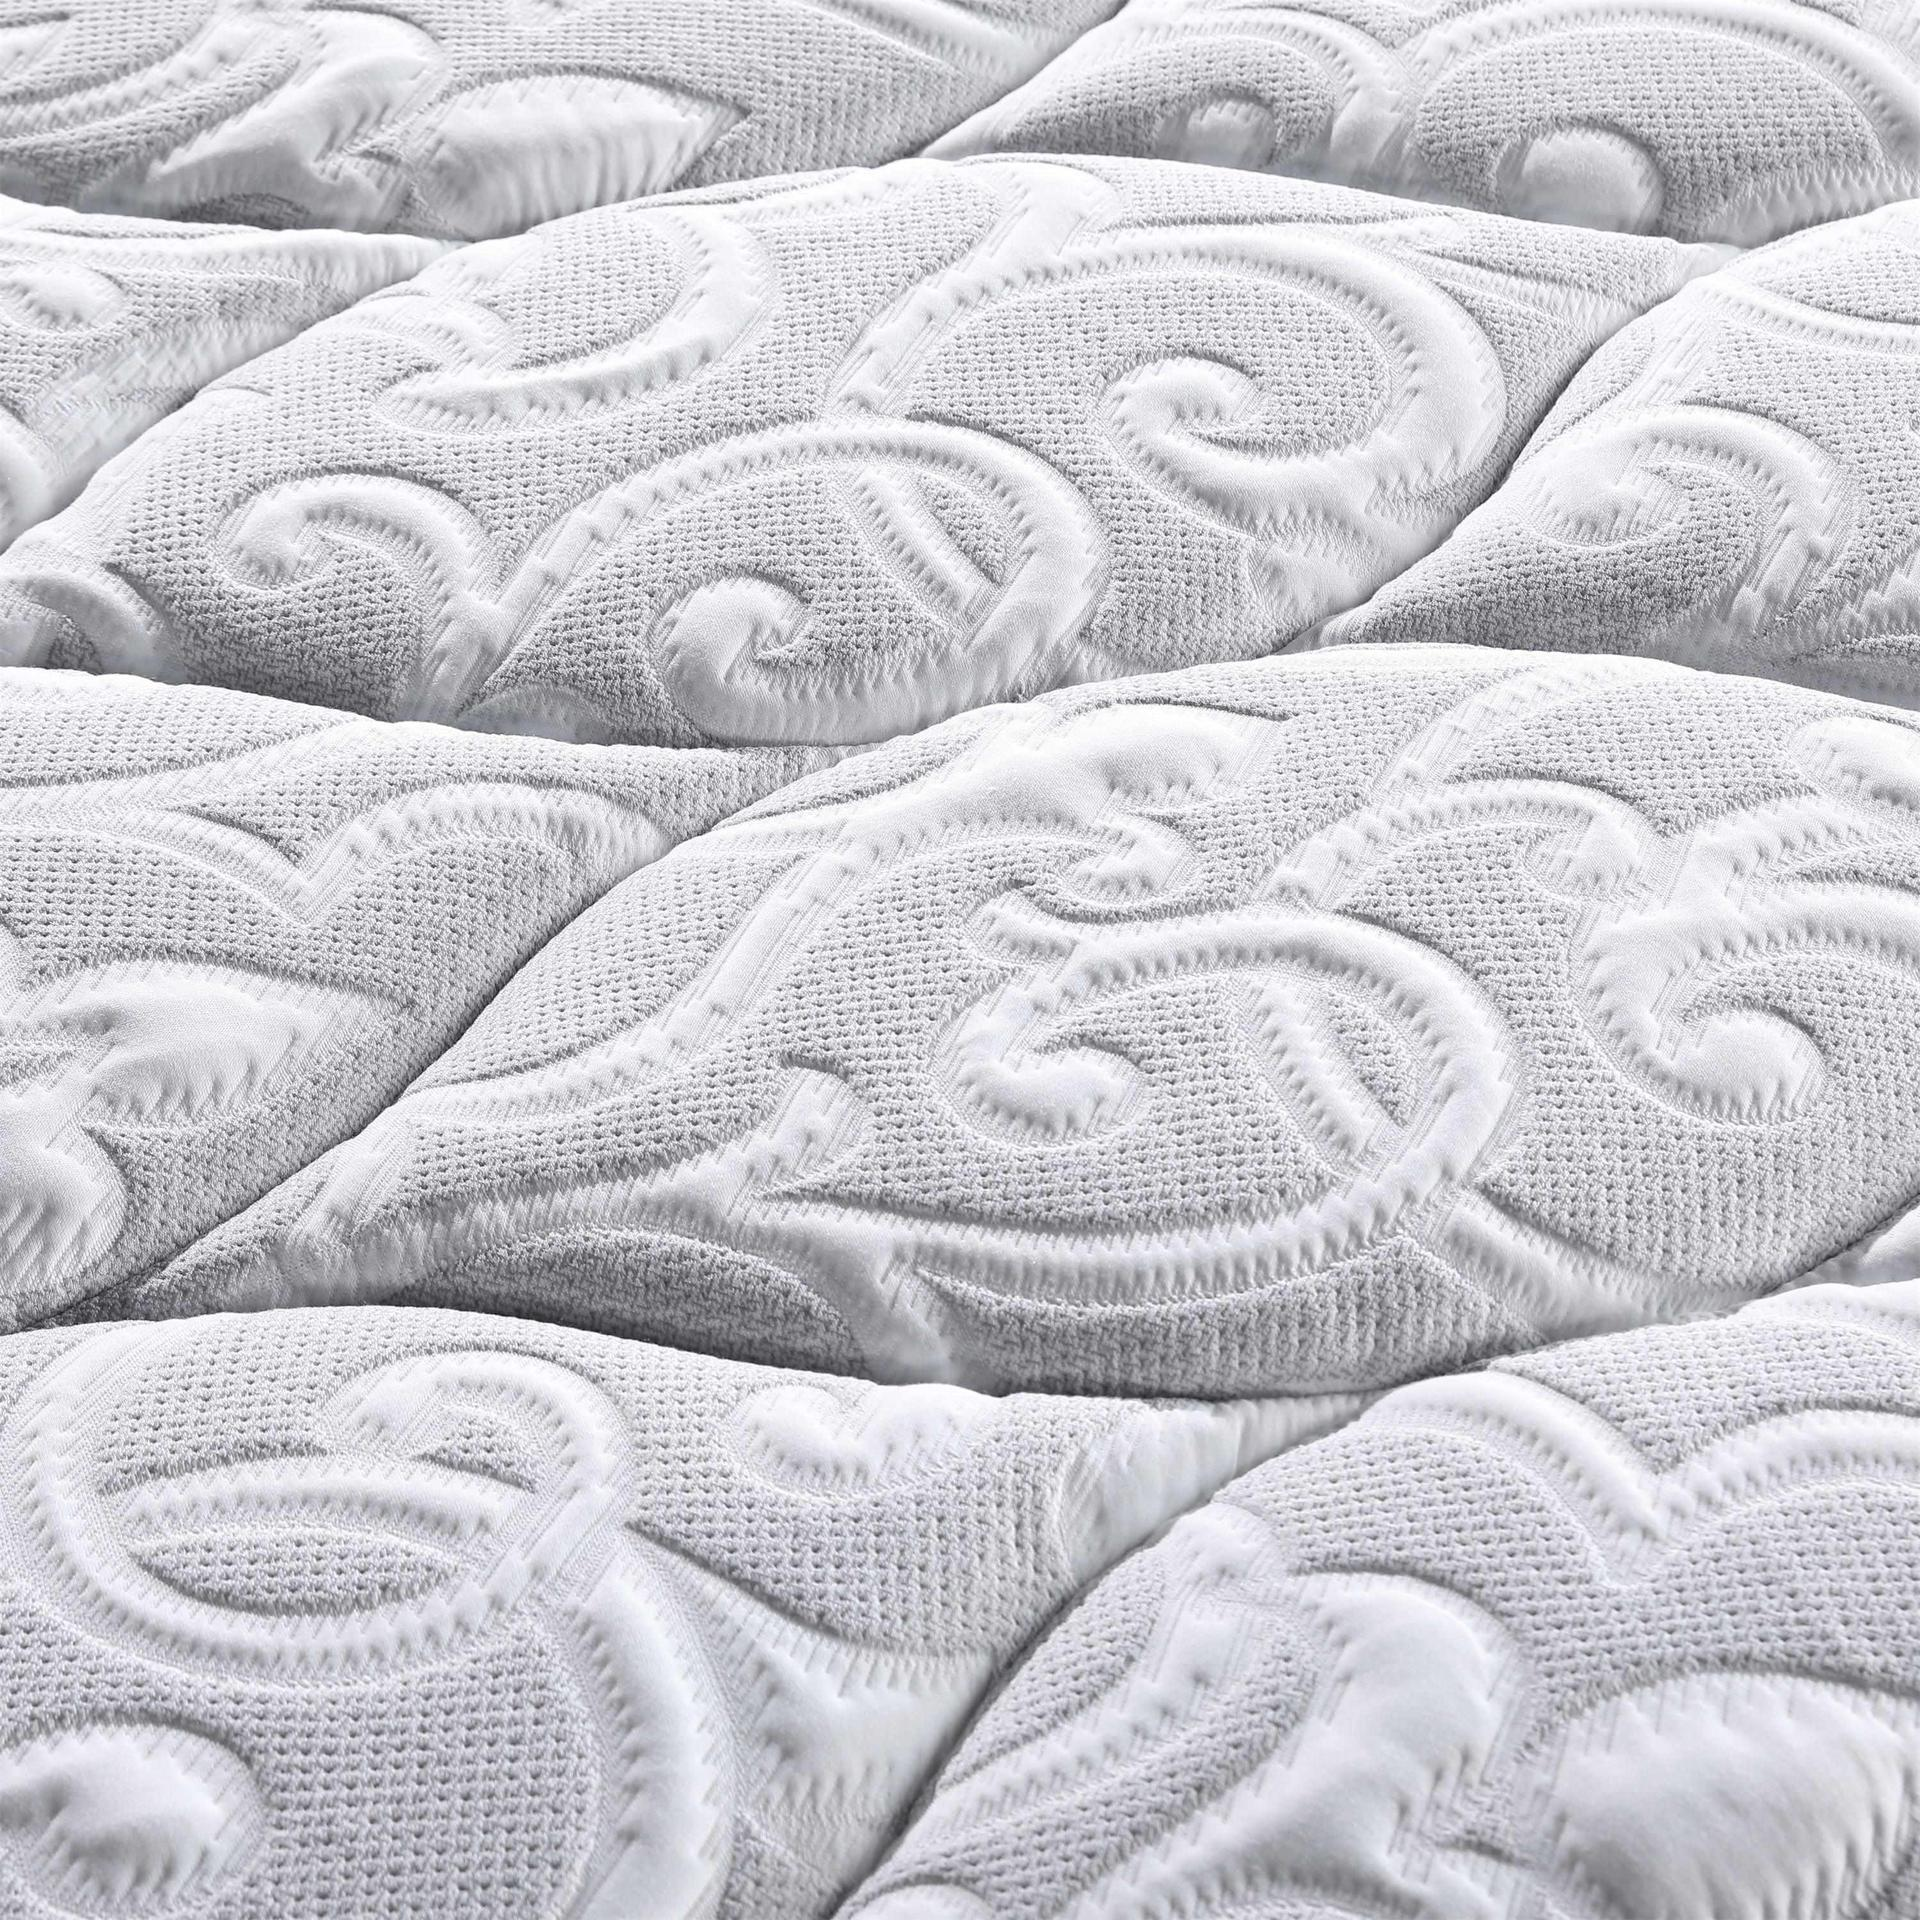 Double Layers 5 Zoned Pocket Spring Mattress Luxury Design With Convoluted Foam